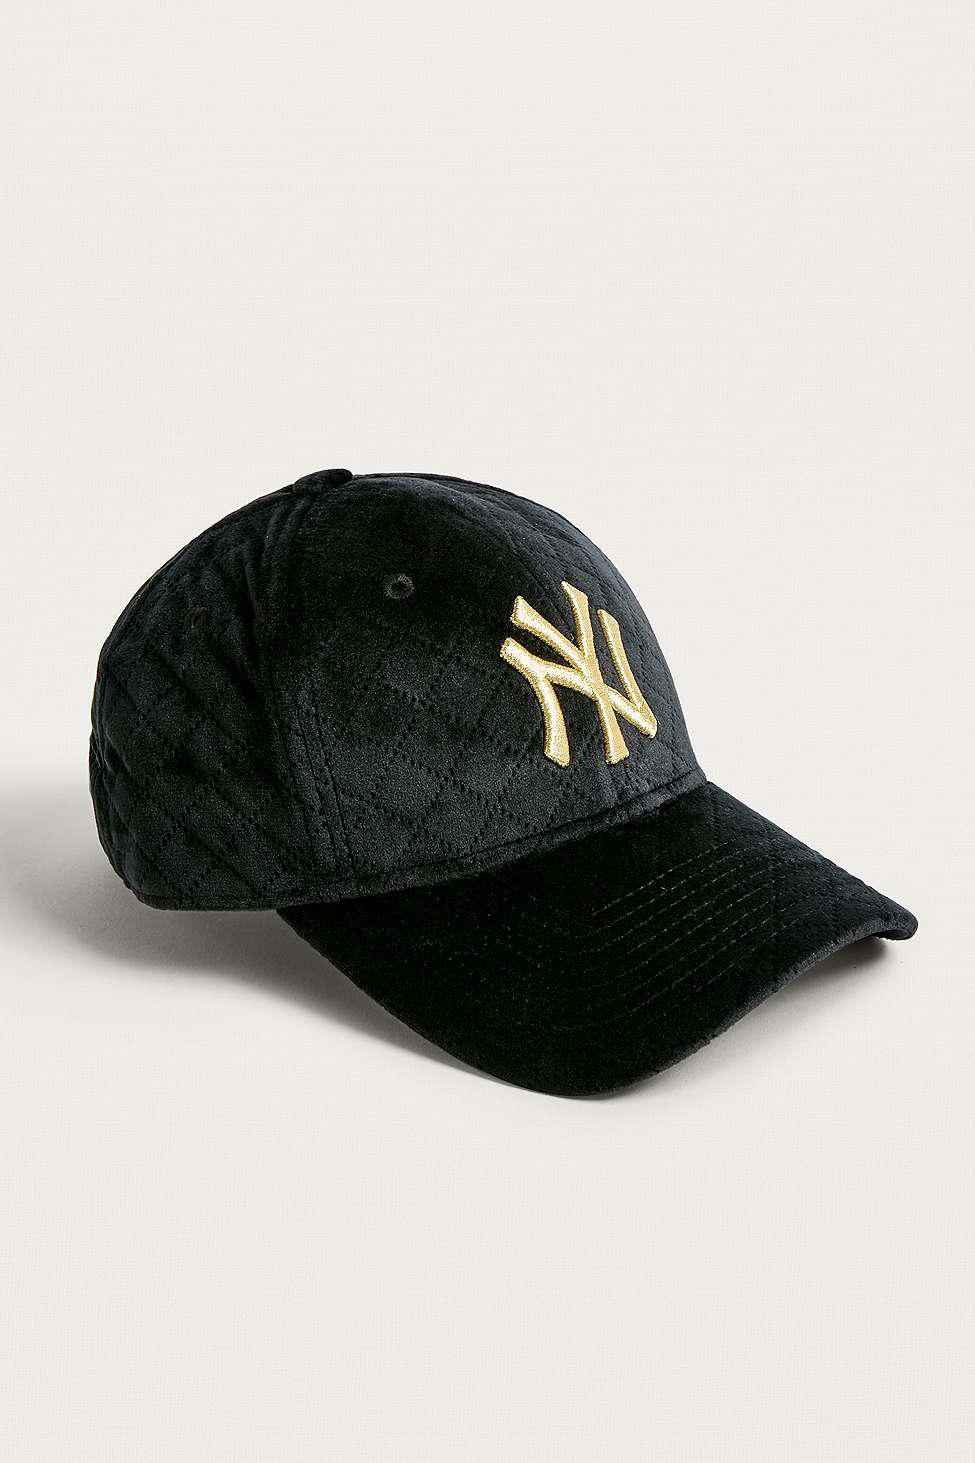 82a7e090c KTZ 9forty New York Yankees Winter Cap - Womens All in Black - Lyst